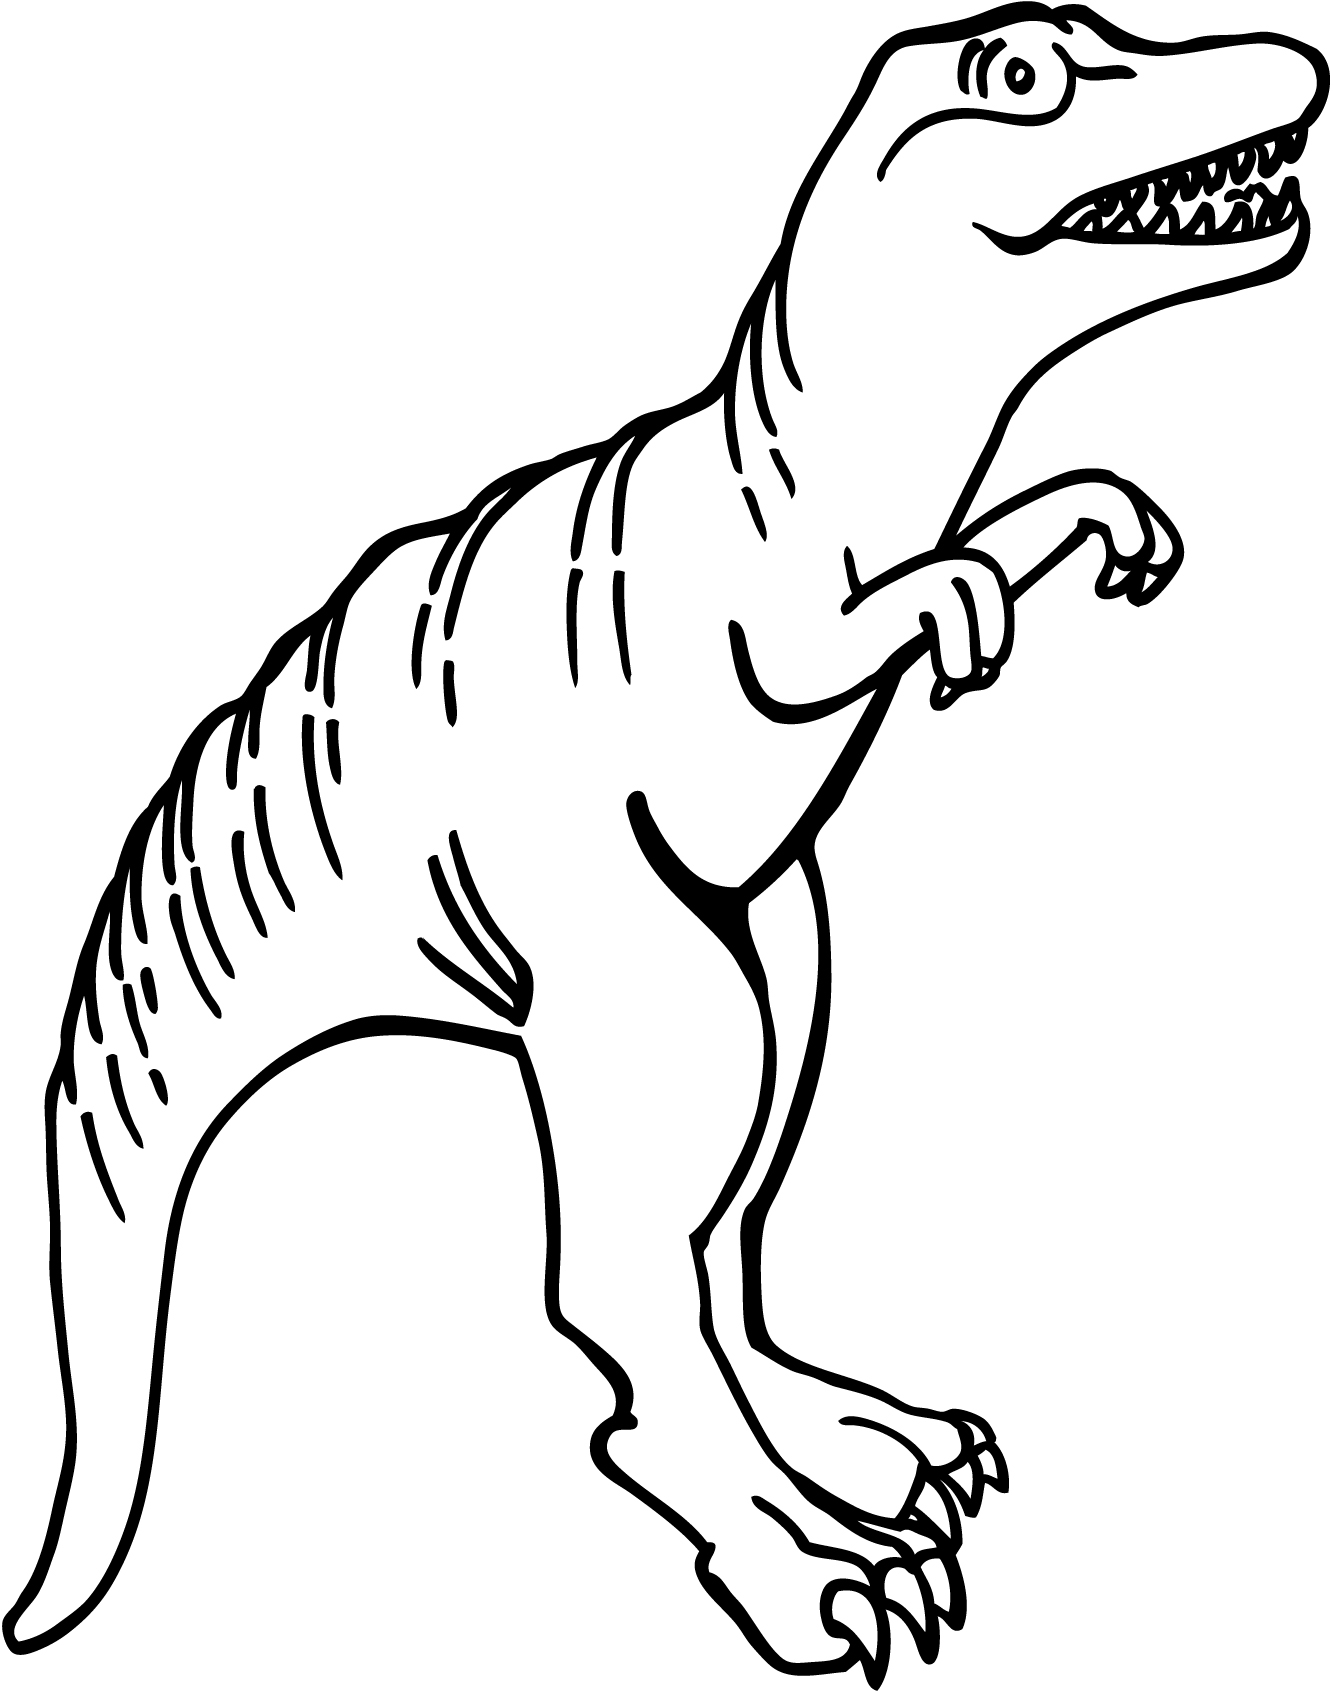 Trex face clipart black and white svg freeuse stock Free T-Rex Cliparts, Download Free Clip Art, Free Clip Art ... svg freeuse stock